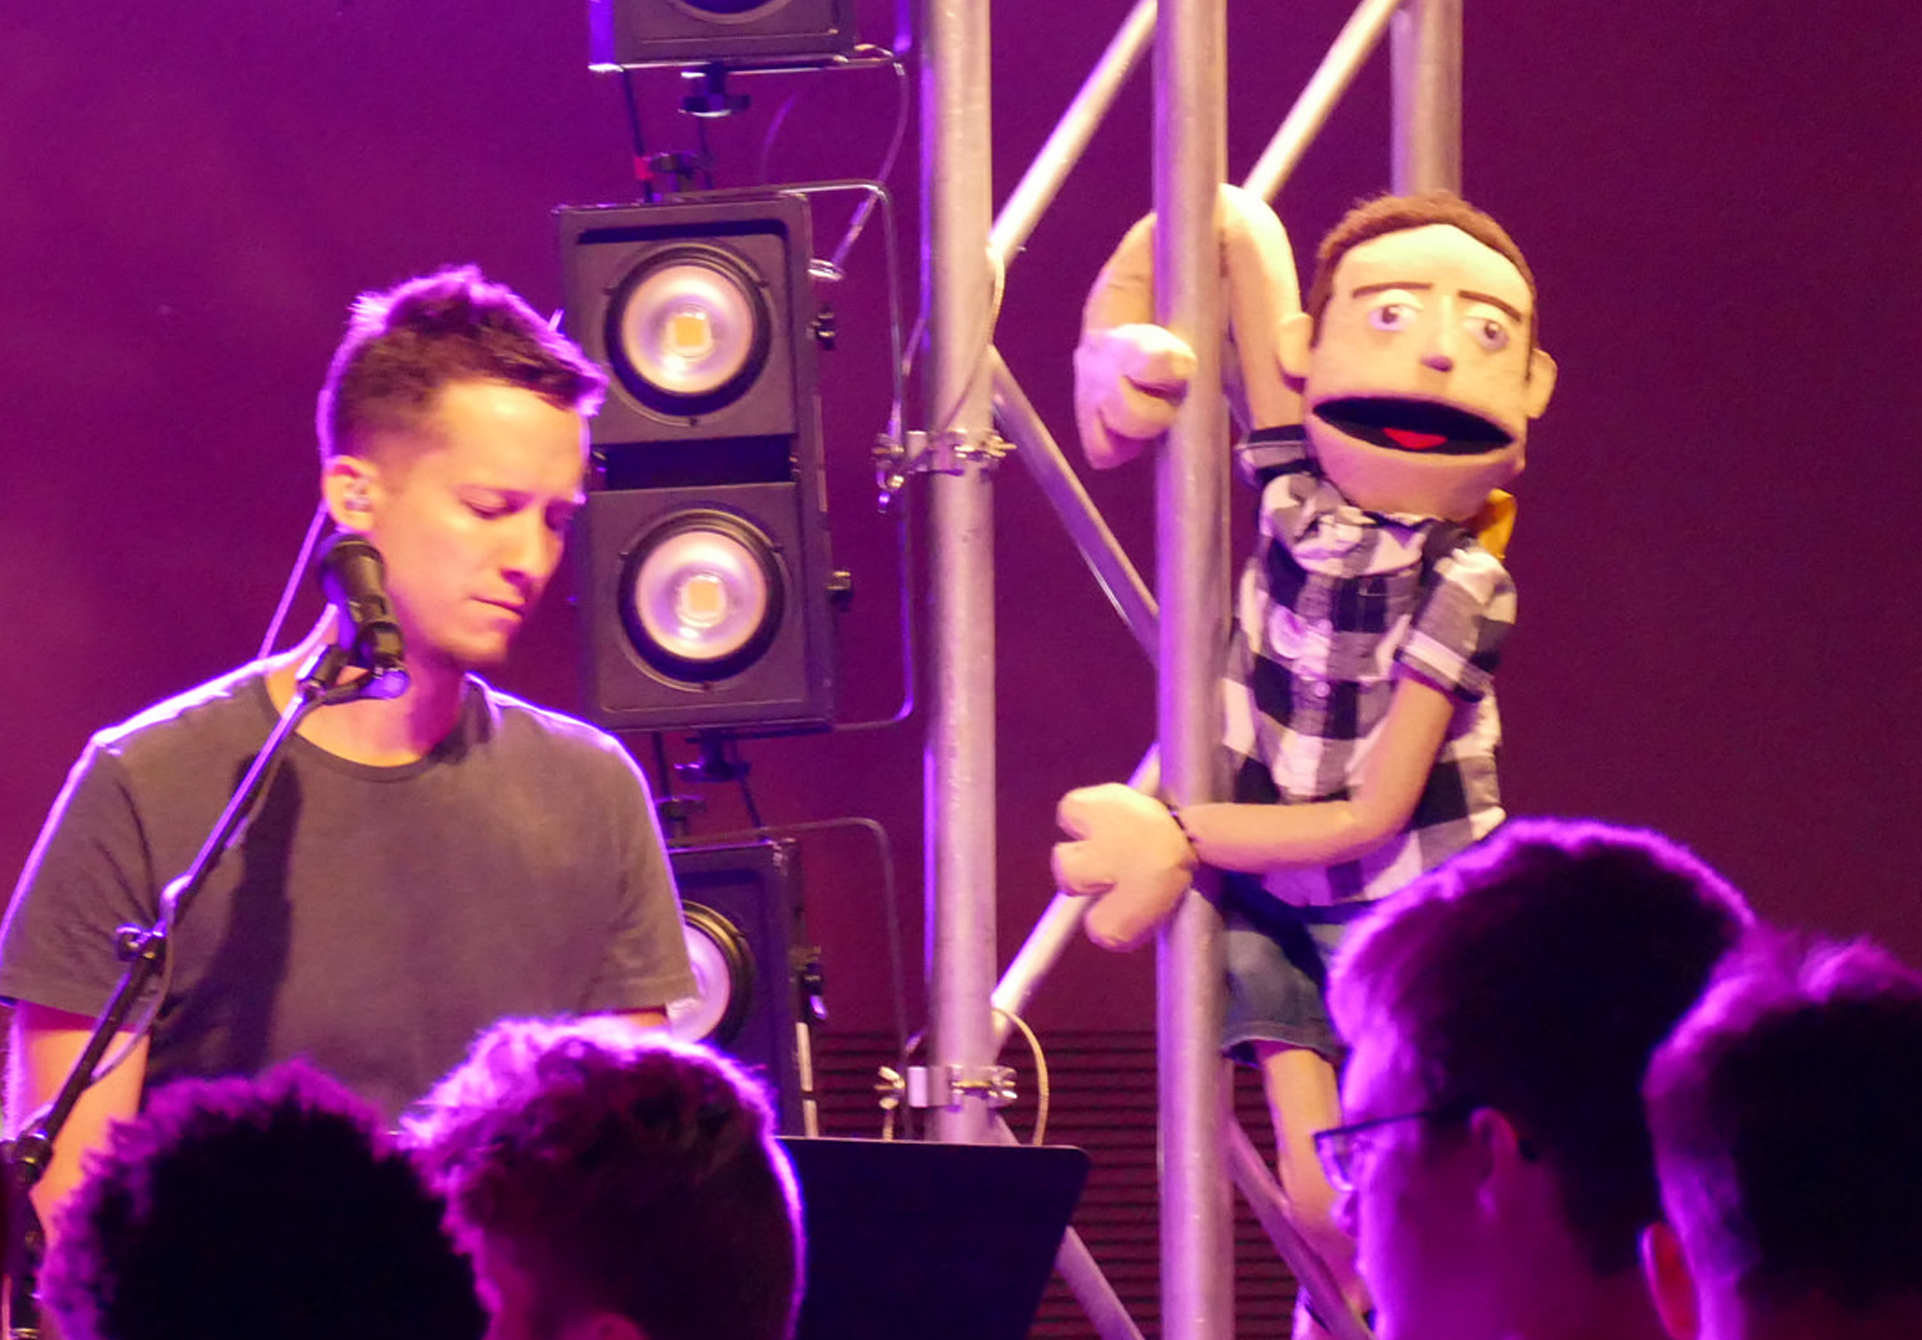 """""""Puppet Ian"""" (right) on stage with """"Human Ian"""" at Ignite 2018."""